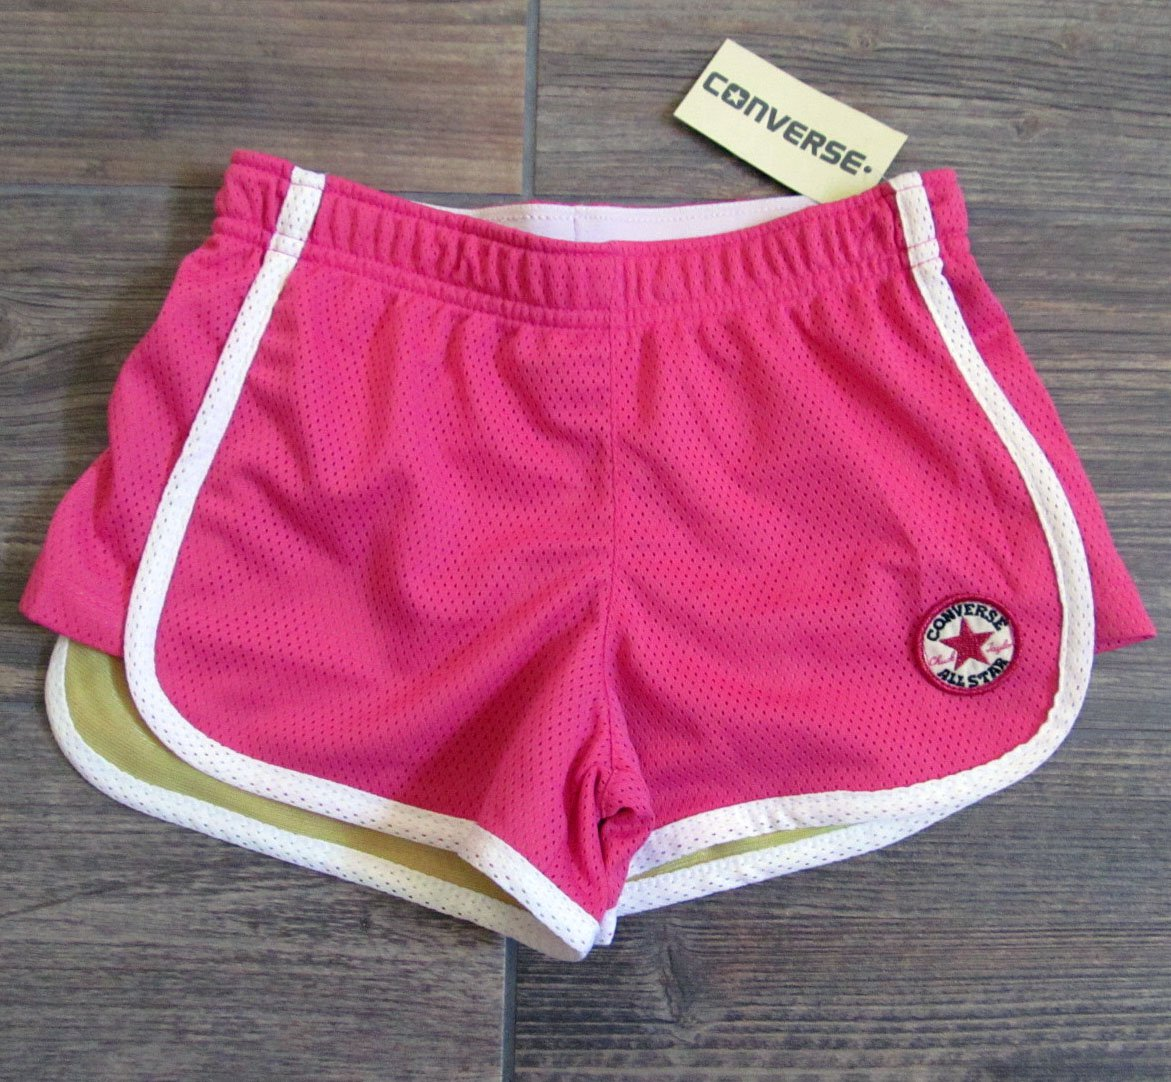 Converse Girls 6X Pink Gym Shorts with Fold Over Waistband Athletic Mesh New